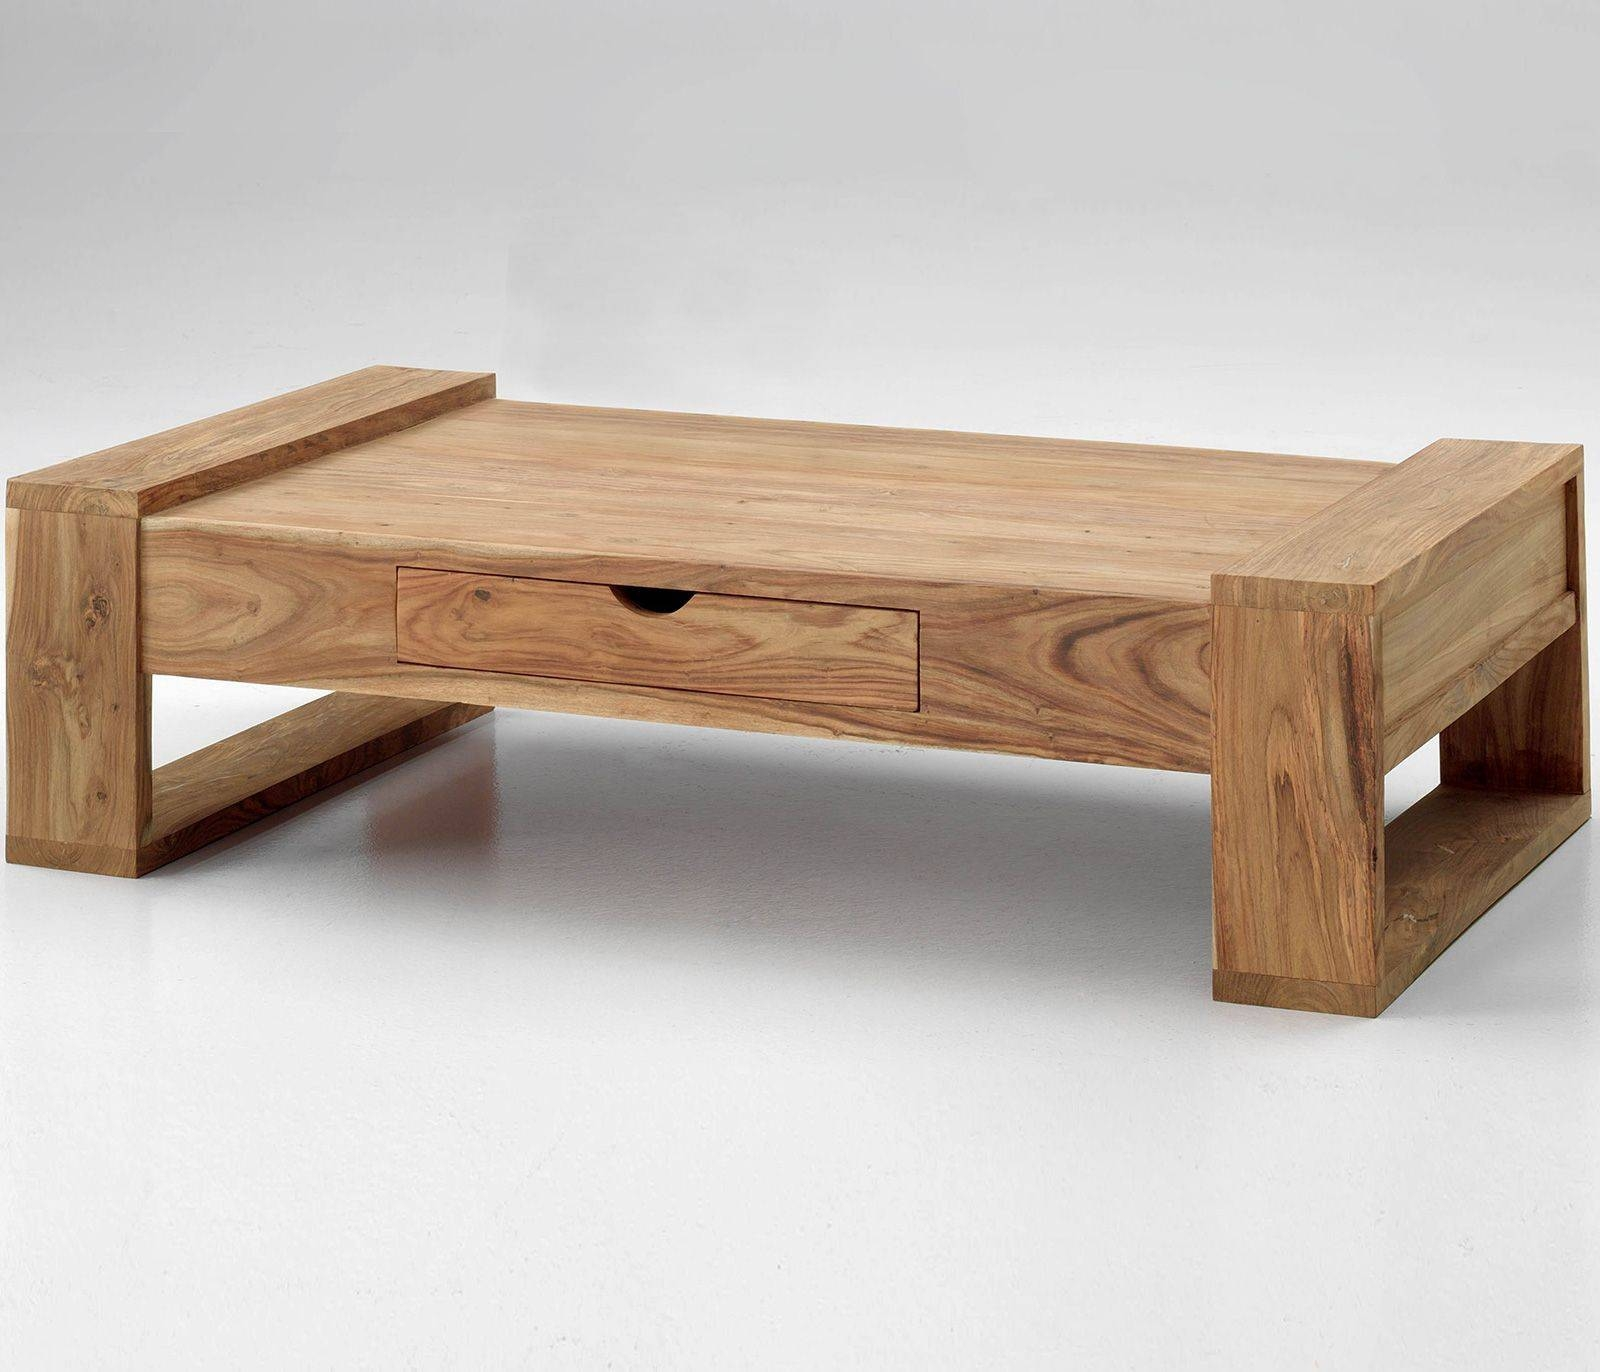 Elegant Wood Coffee Tables Furniture – Restoration Hardware, Metal inside Chunky Rustic Coffee Tables (Image 13 of 30)